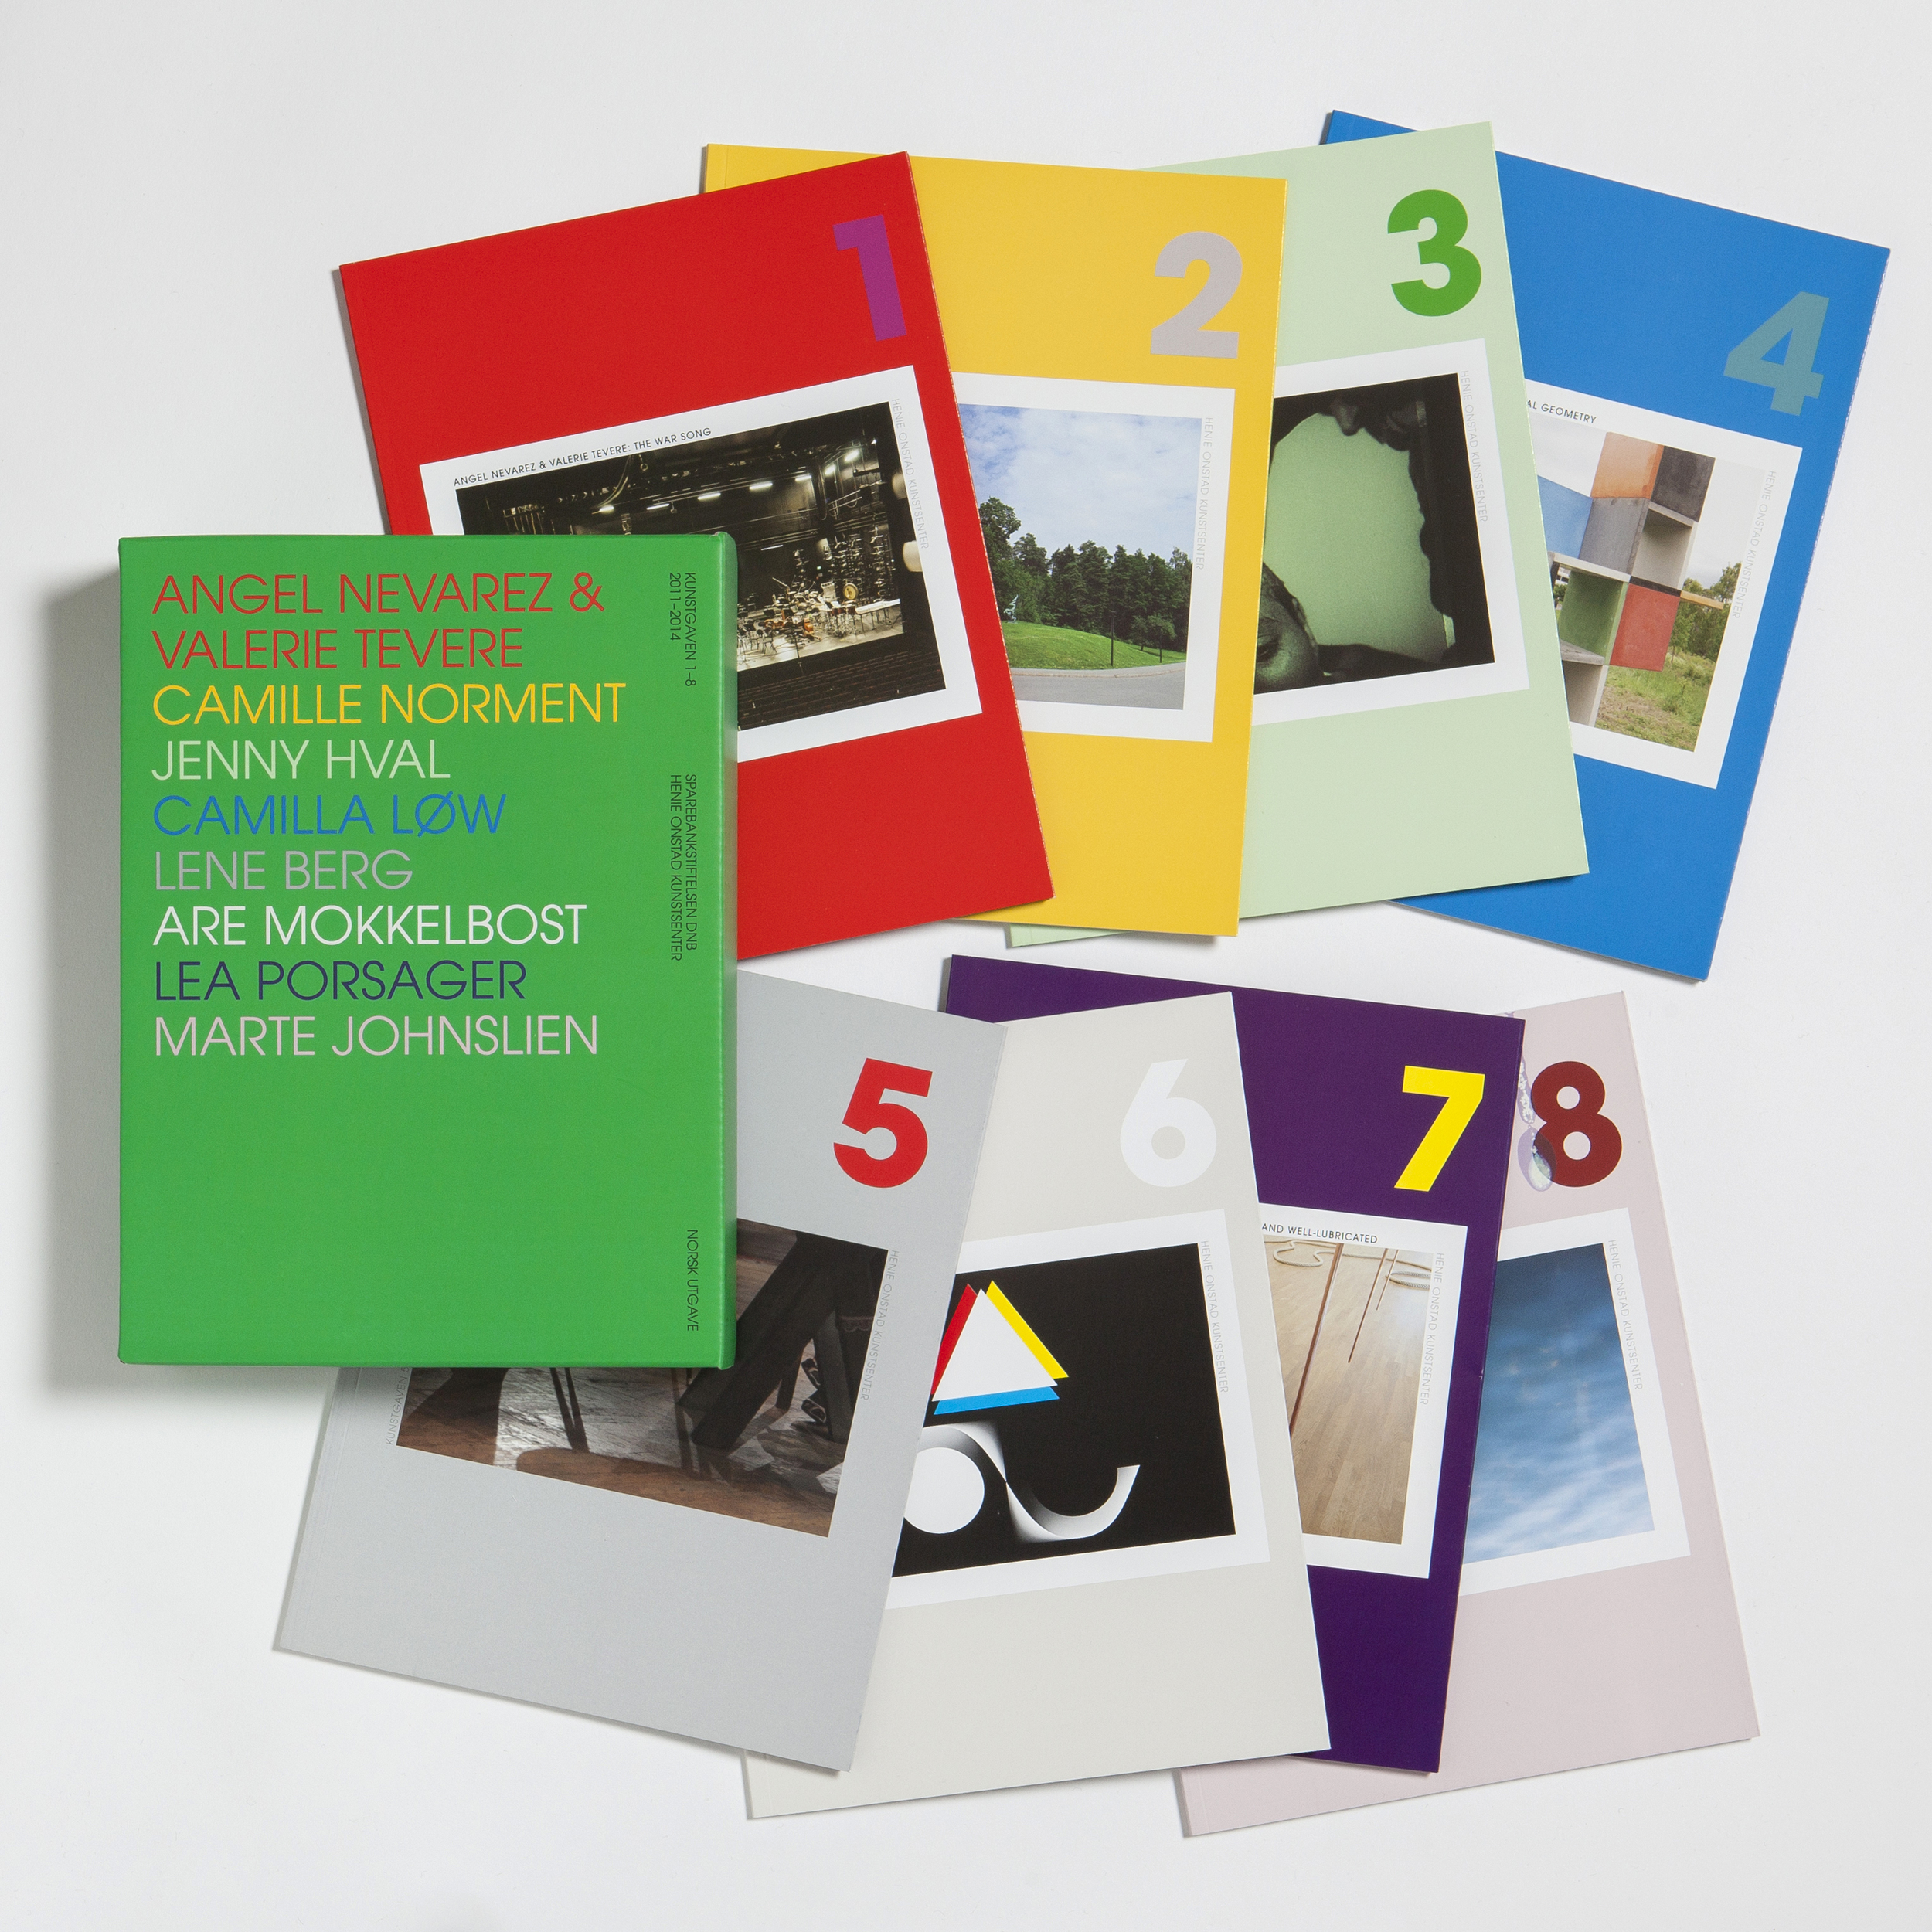 Collection of catalogs of commissioned work for Henie Onstad Art Center, funded by Sparebankstiftelsen. Design by  Peder Bernhardt .